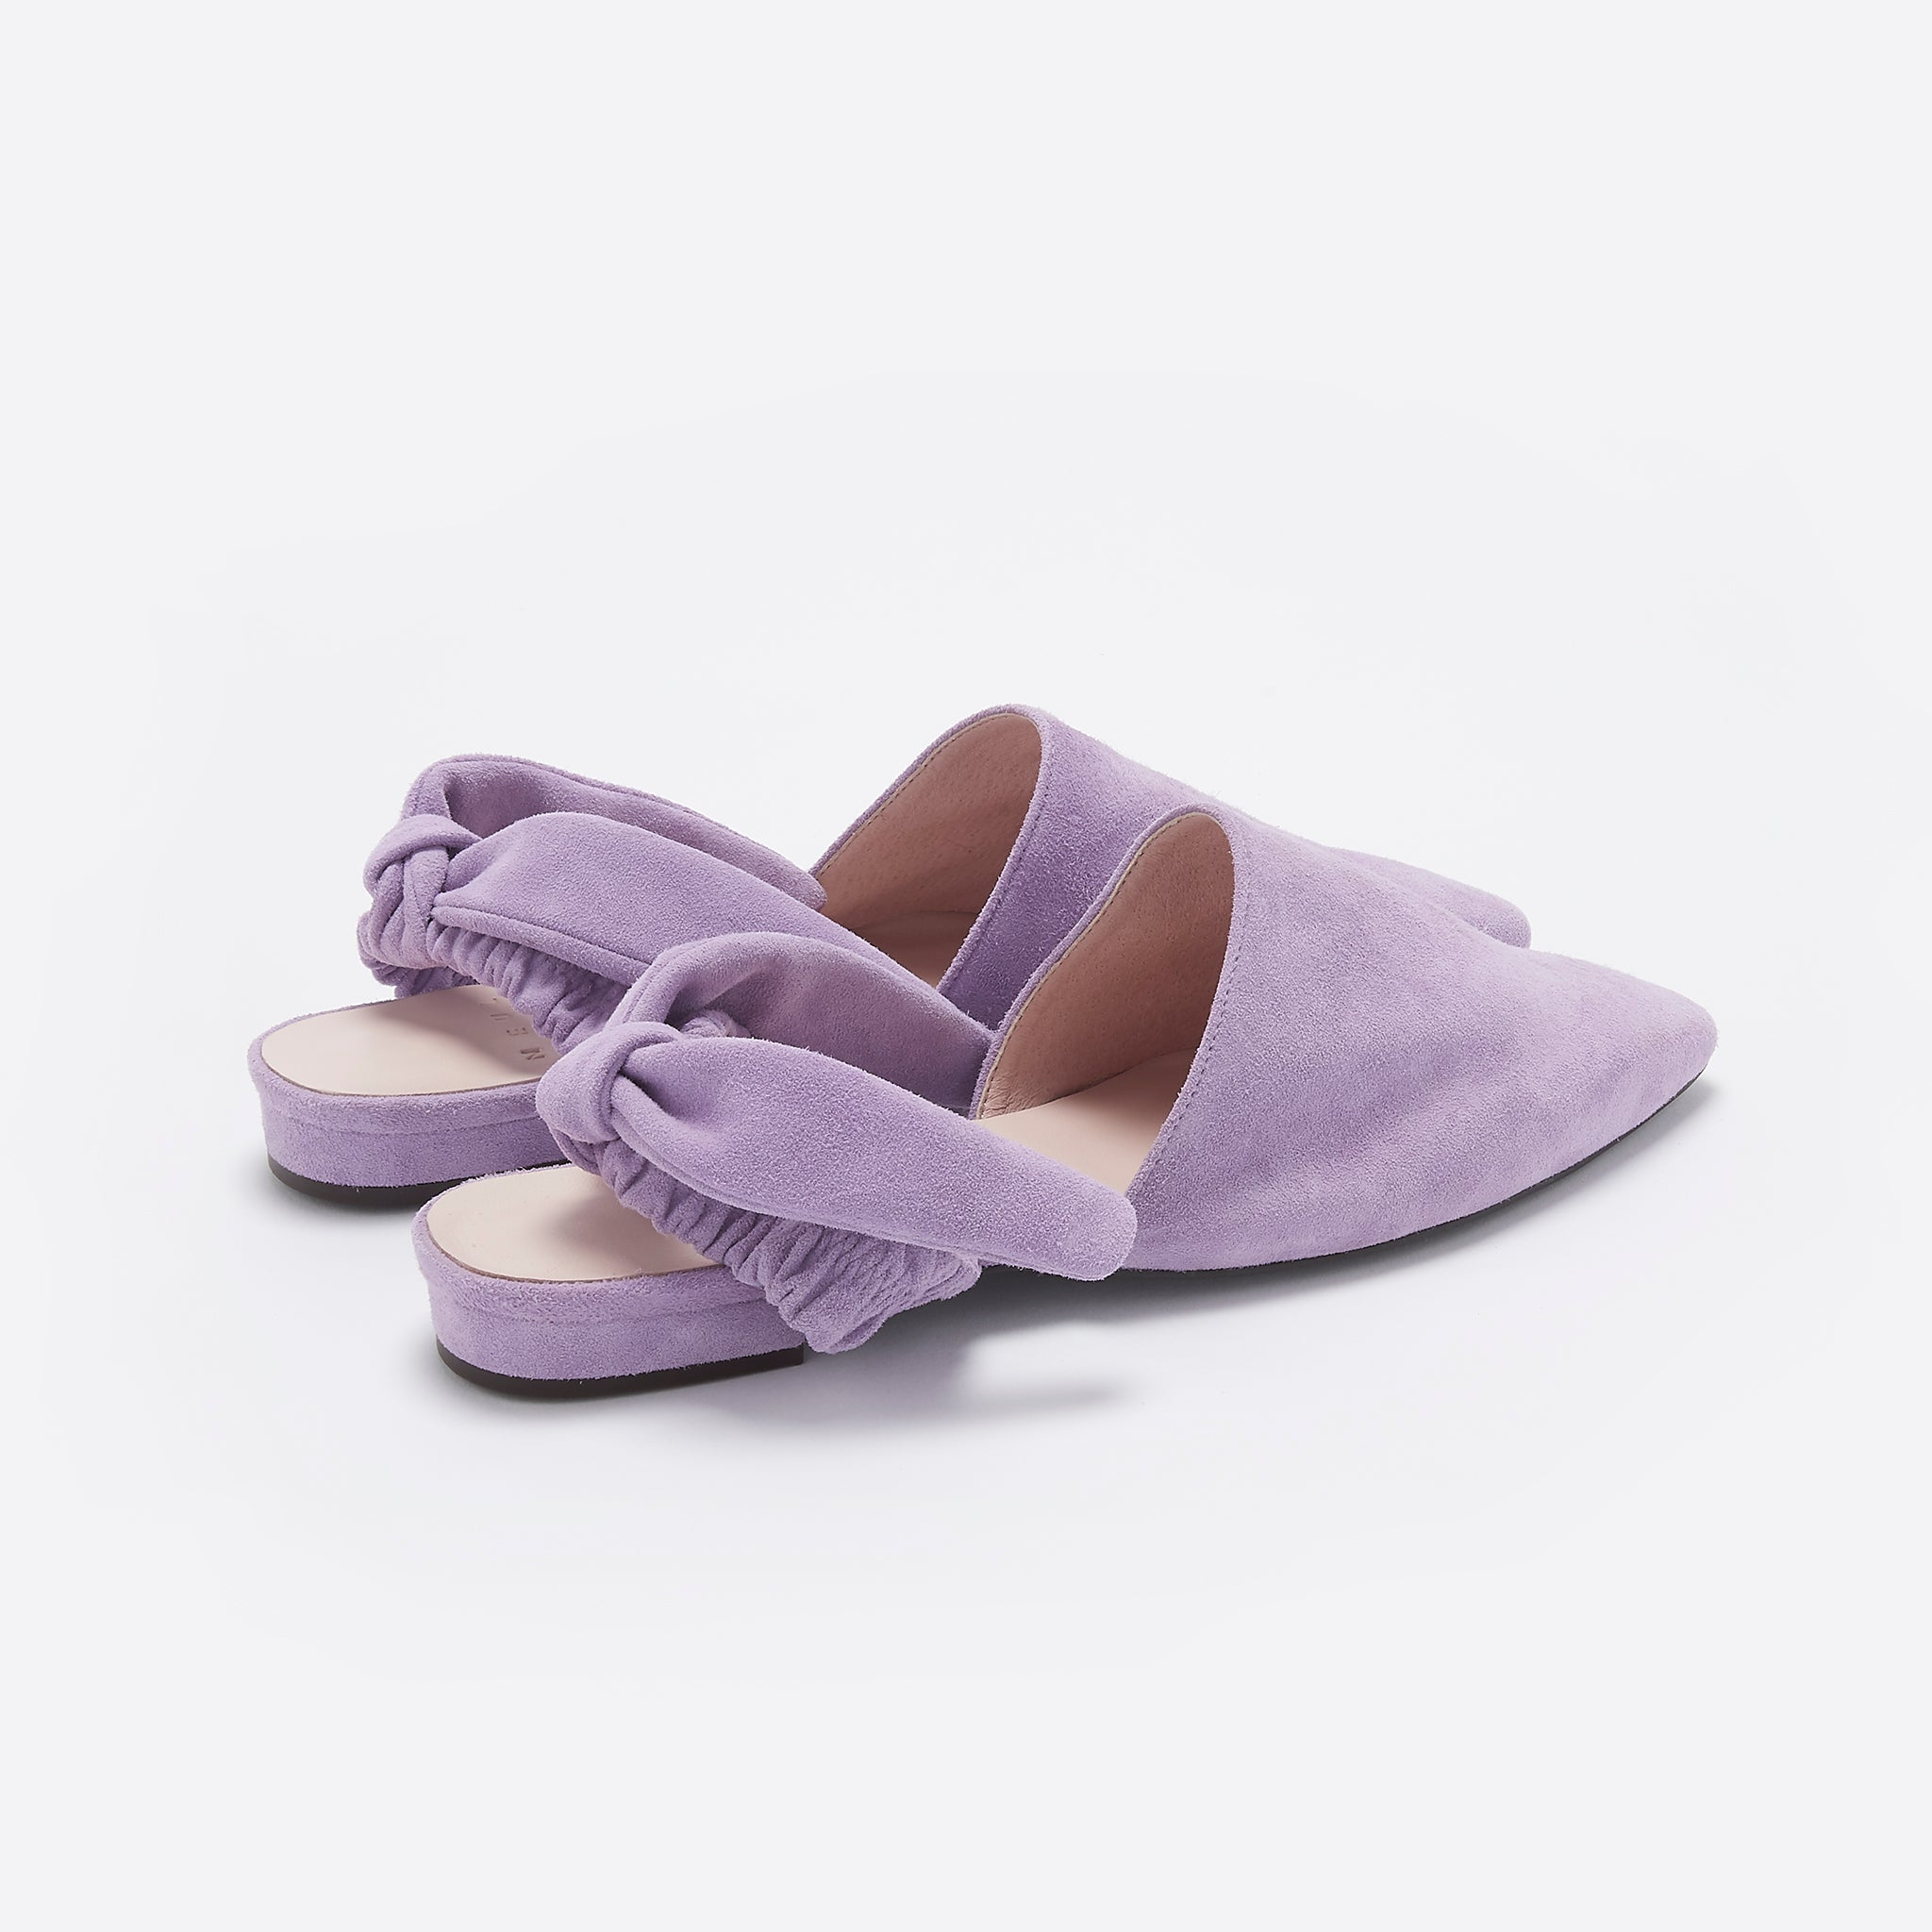 Neul Vintage Ribbon Loafer in Coconut Shell and Lavender Frost